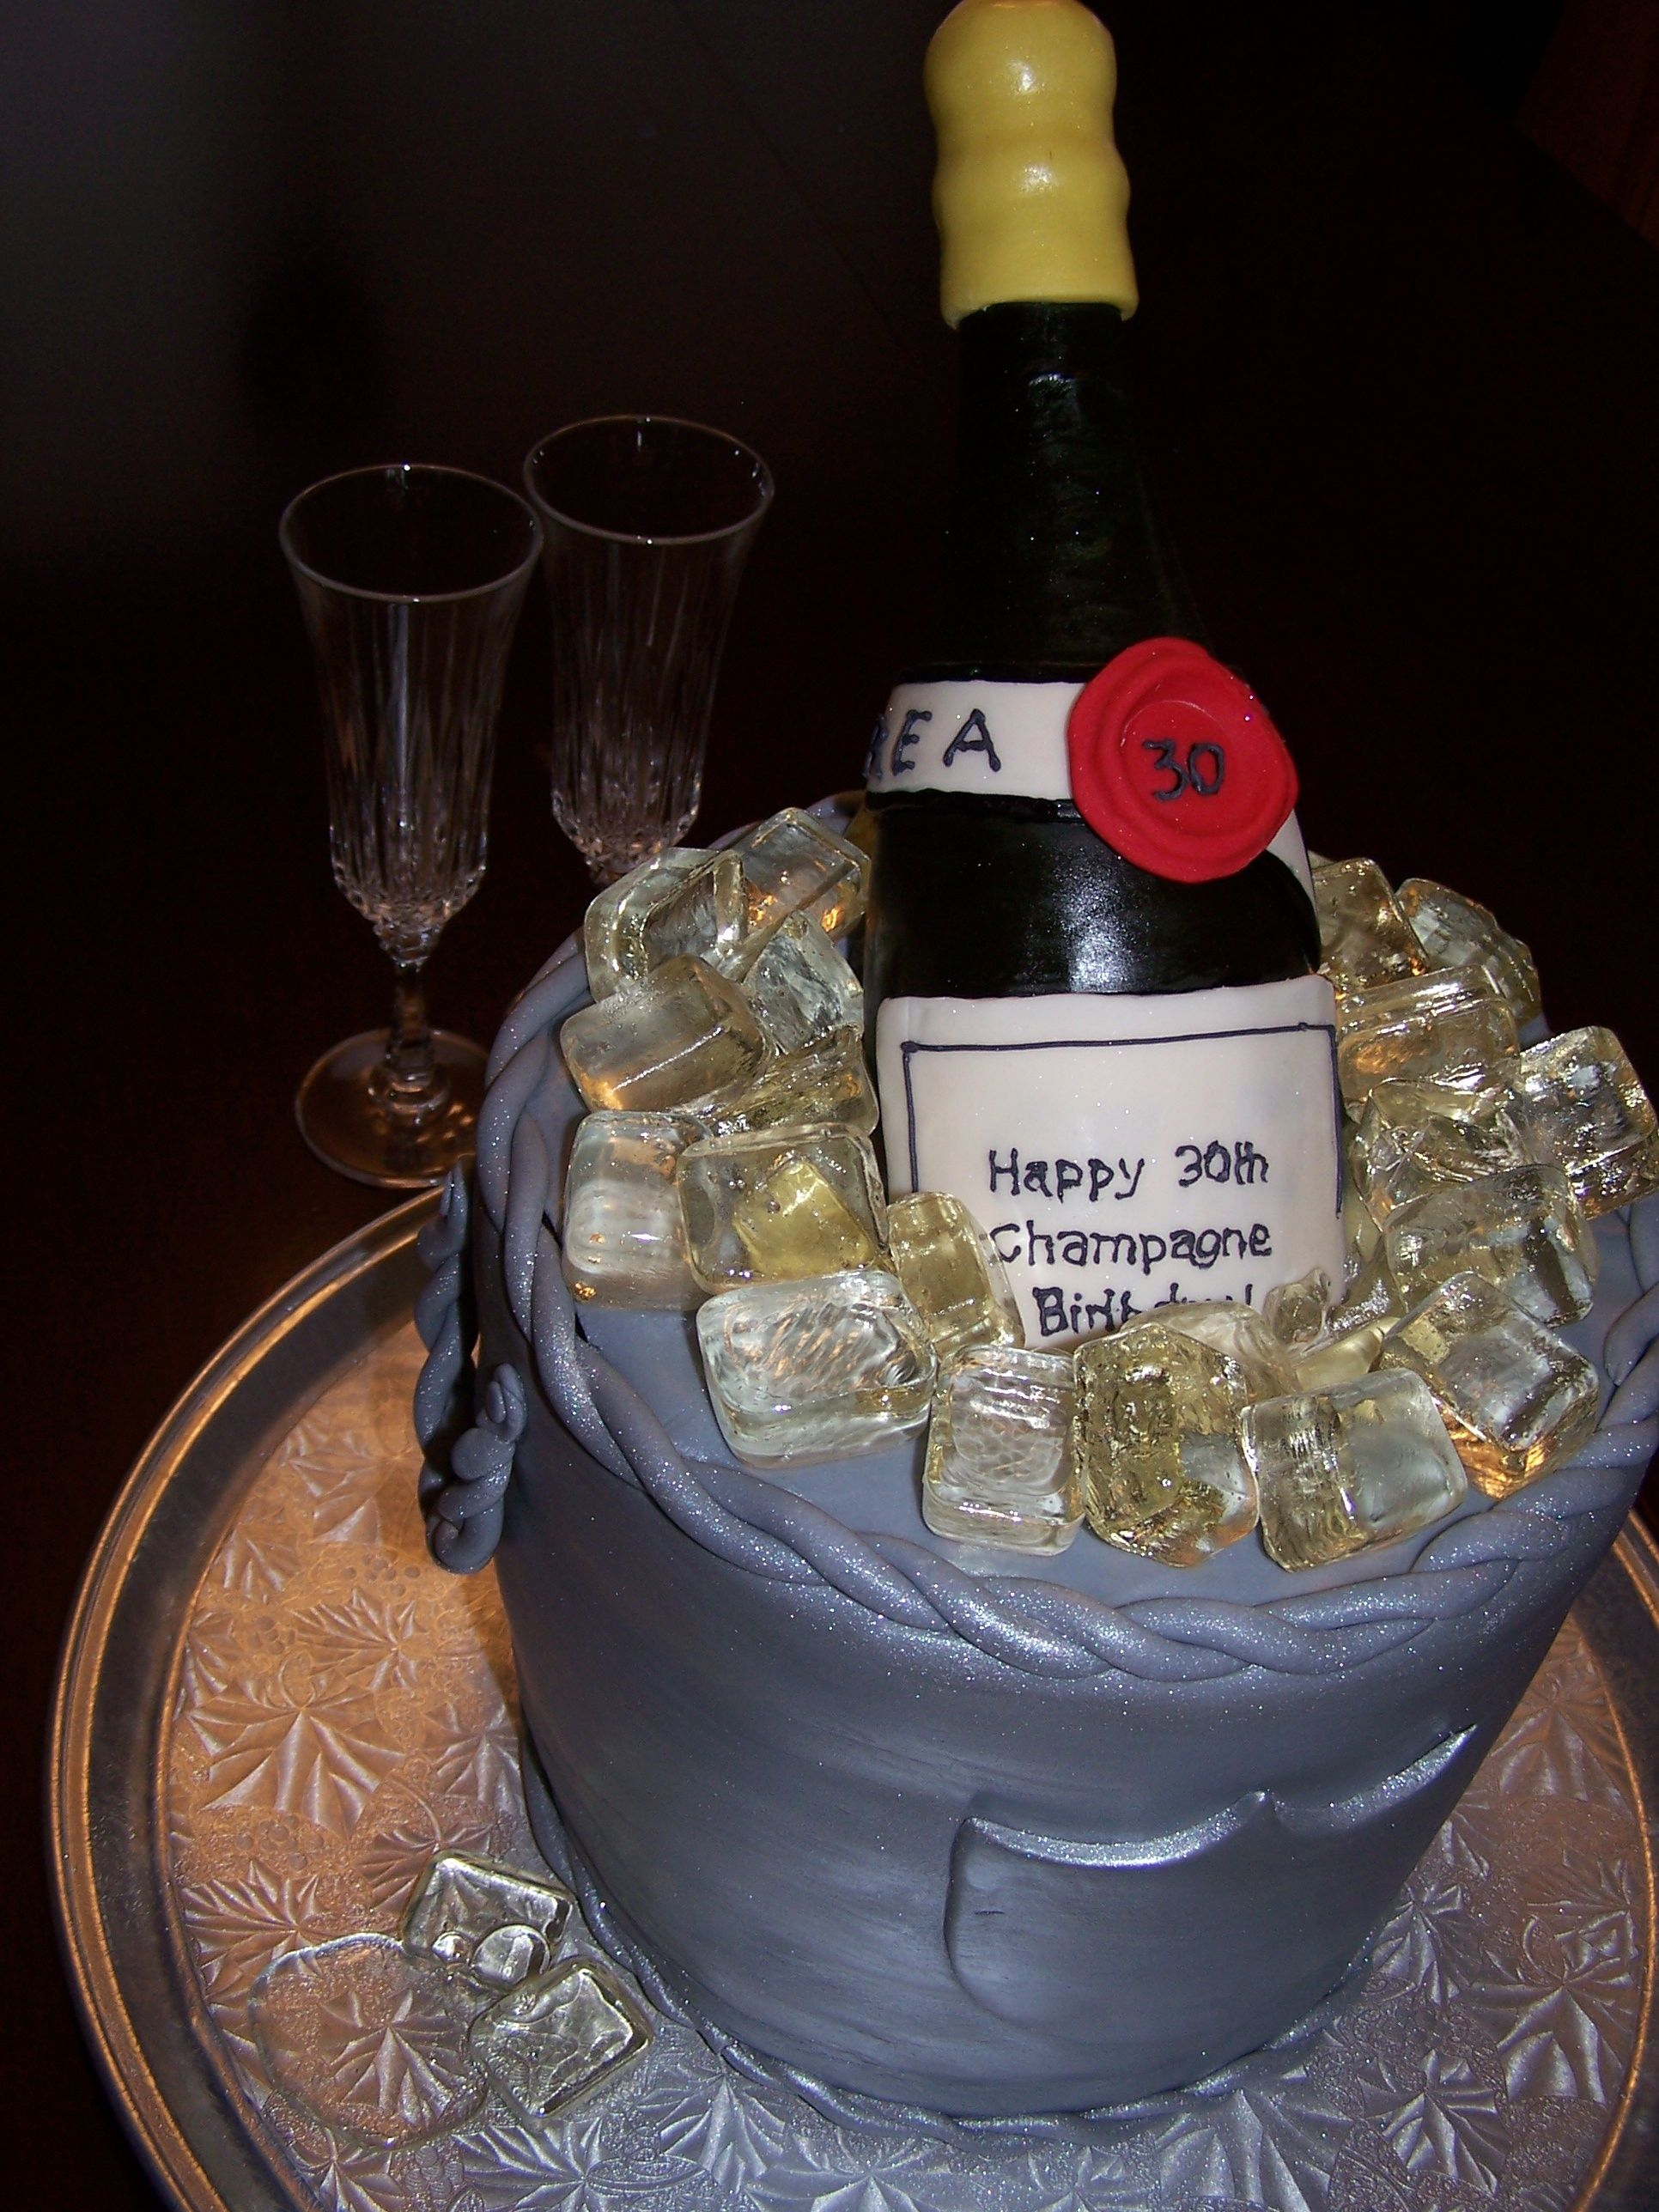 This Is A Champagne Birthday Chocolate Cake The Ice Cubes Are Made Of Sugar And Corn Syrup And The Bottle Is M Birthday Chocolates Champagne Birthday Ice Cake